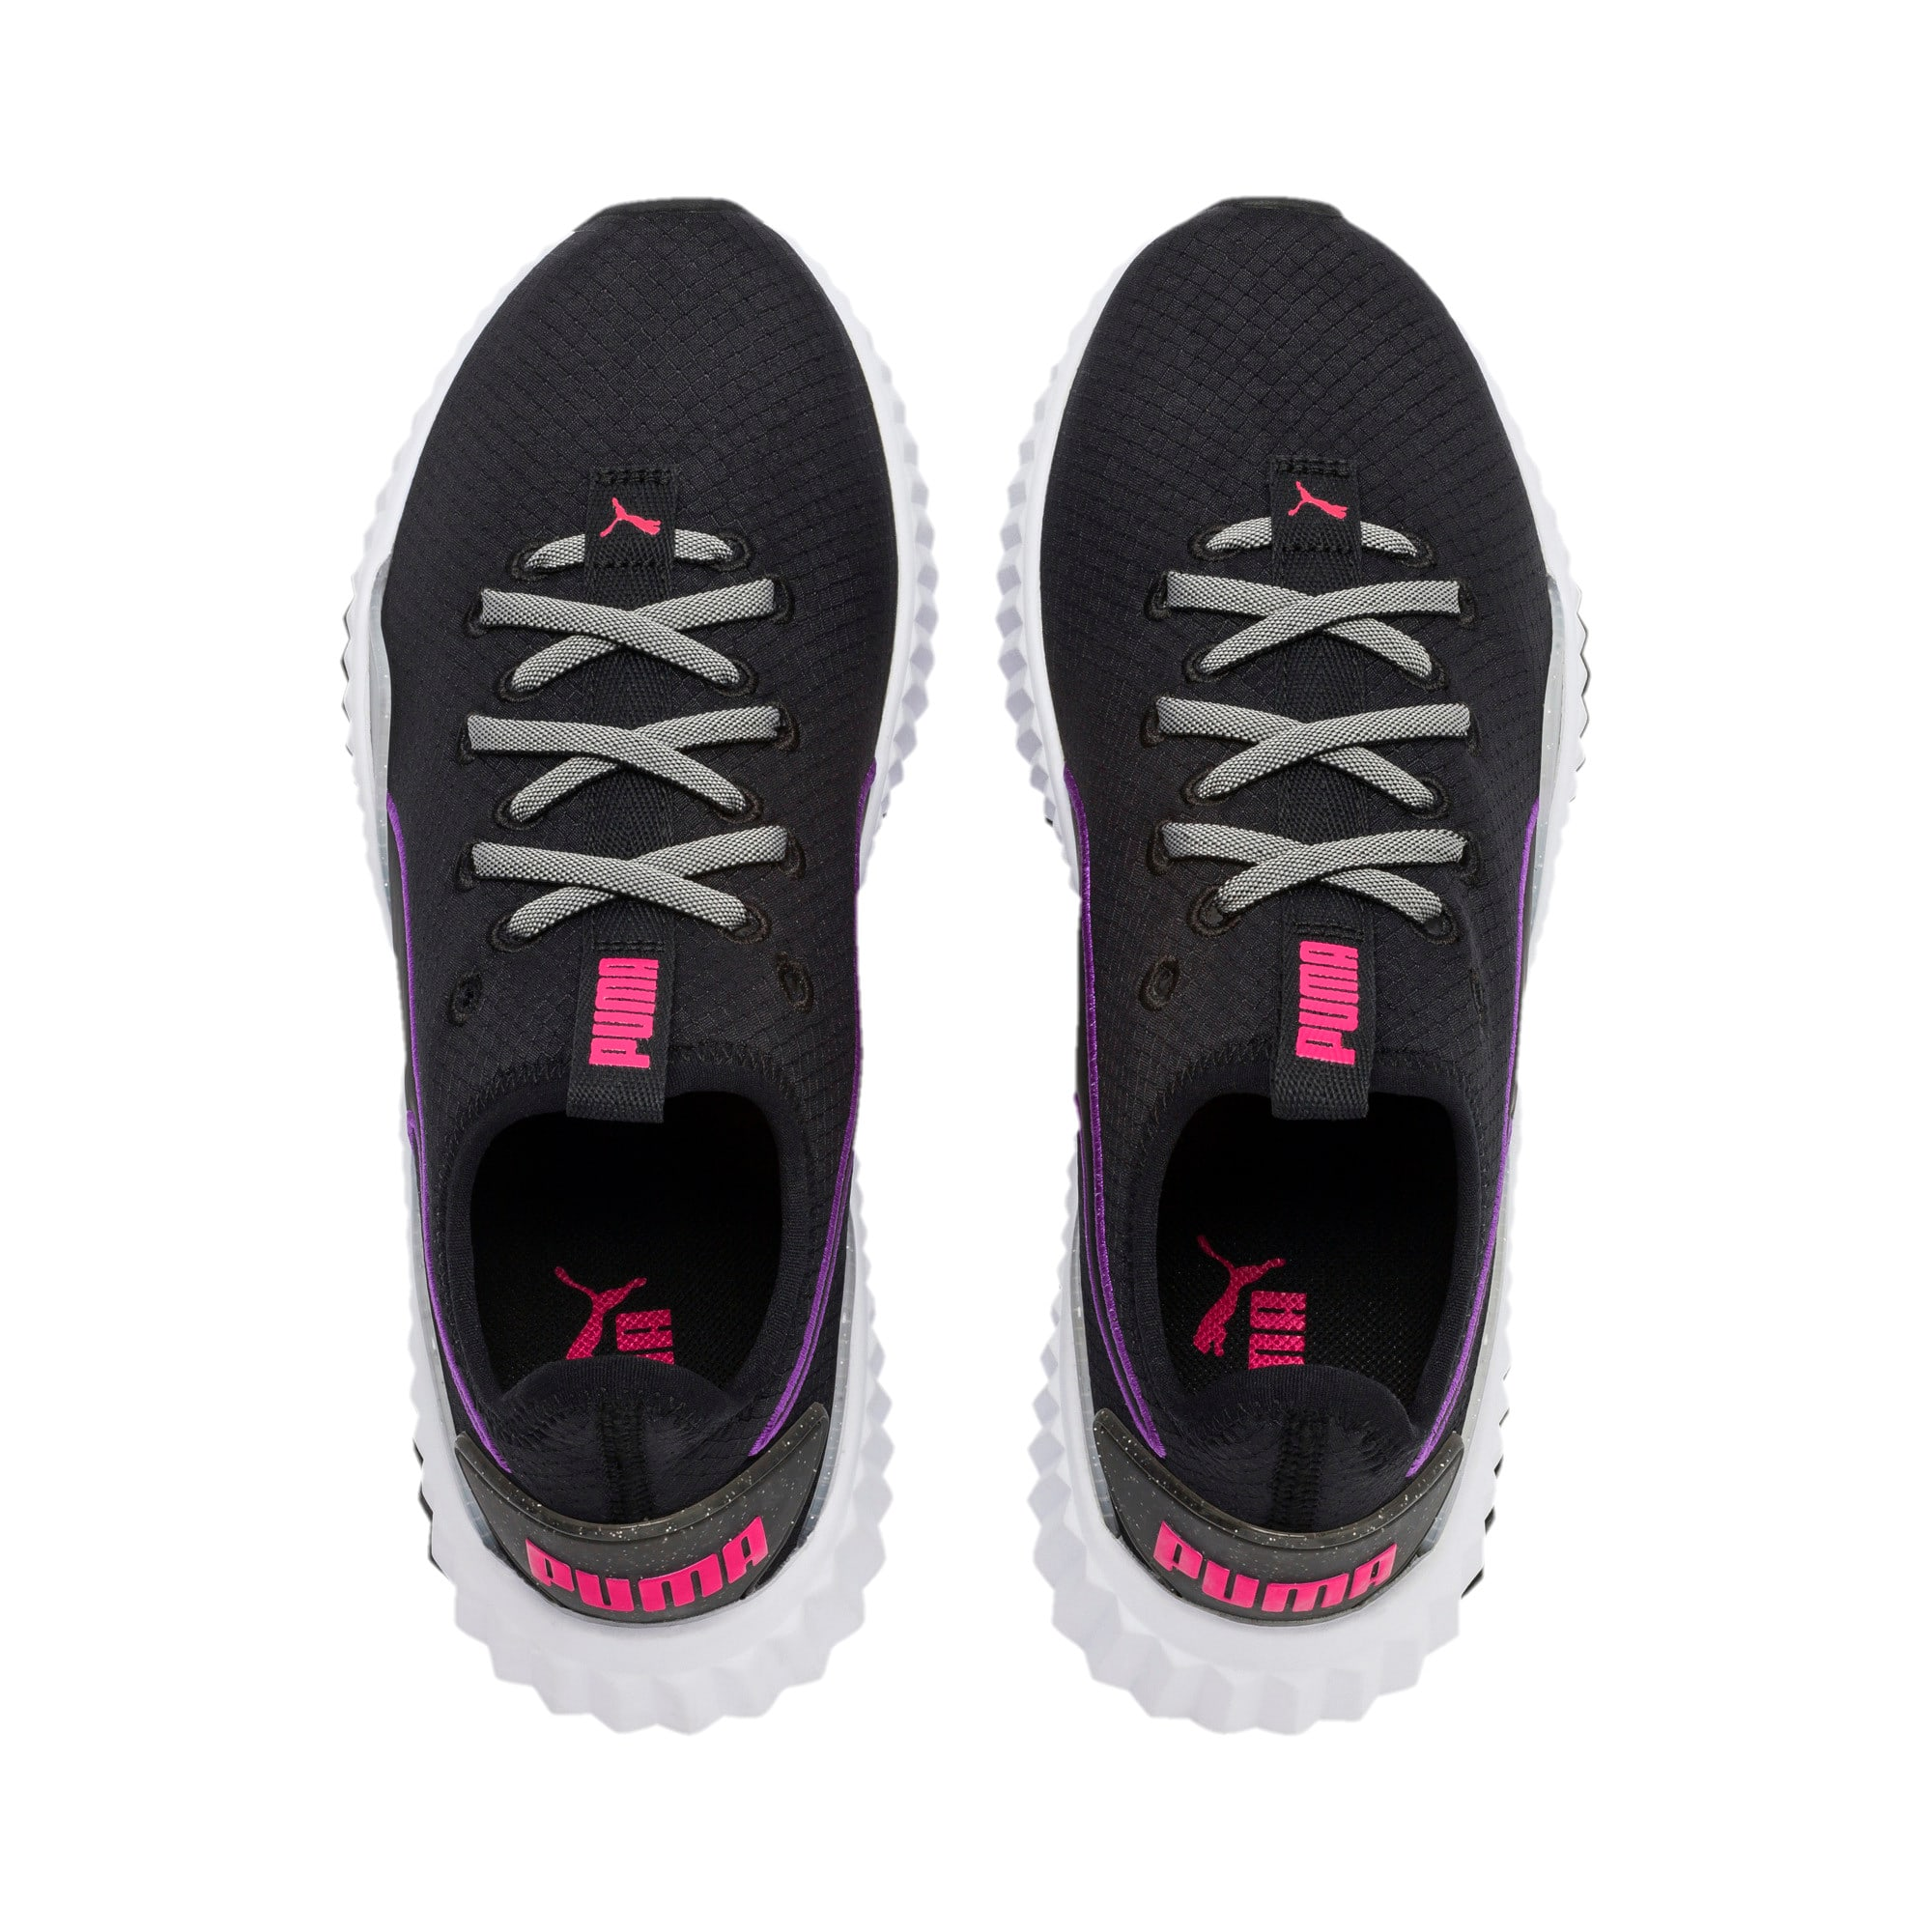 Thumbnail 7 of Defy Sheen Women's Training Shoes, Puma Black-Puma White, medium